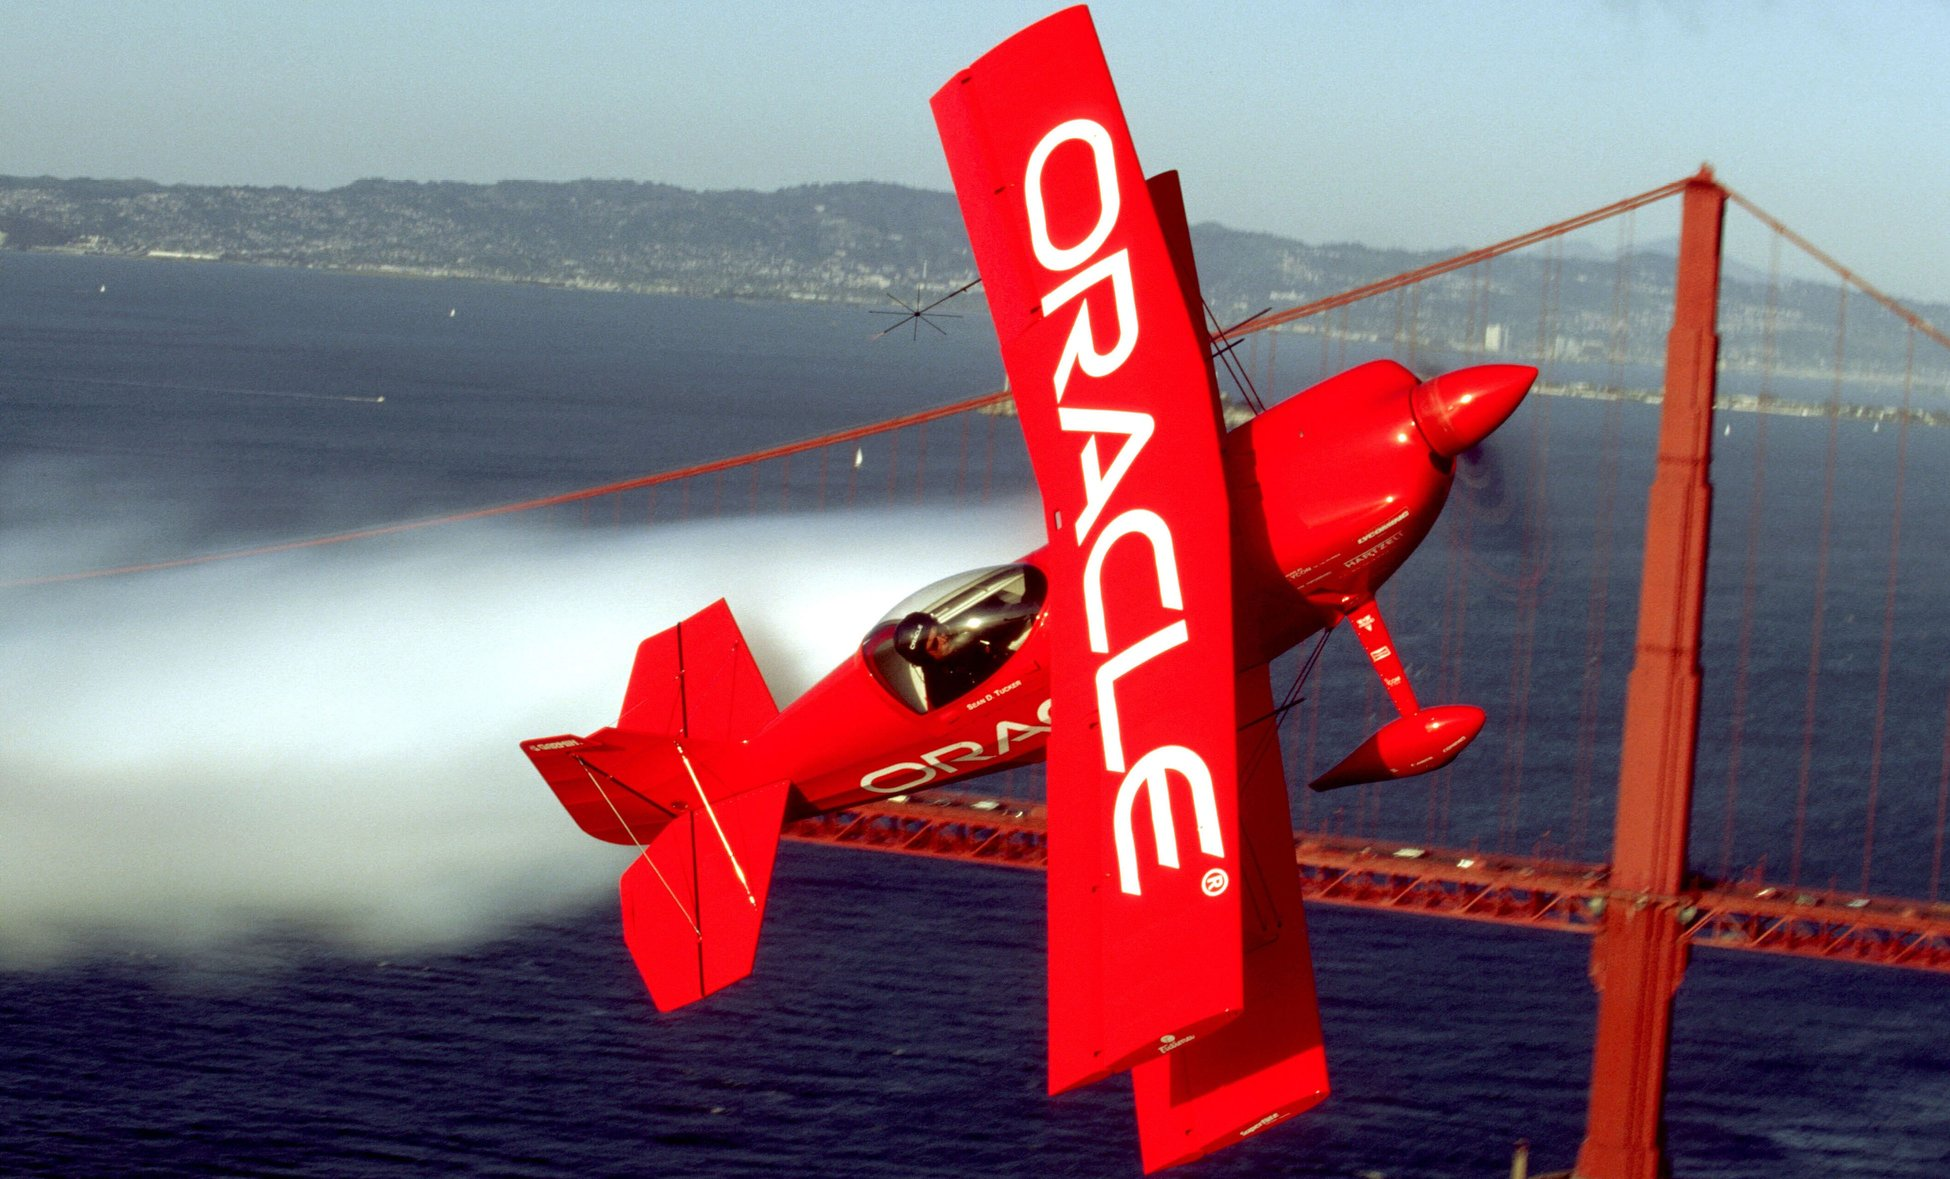 Oracle Investment - get the most out of it